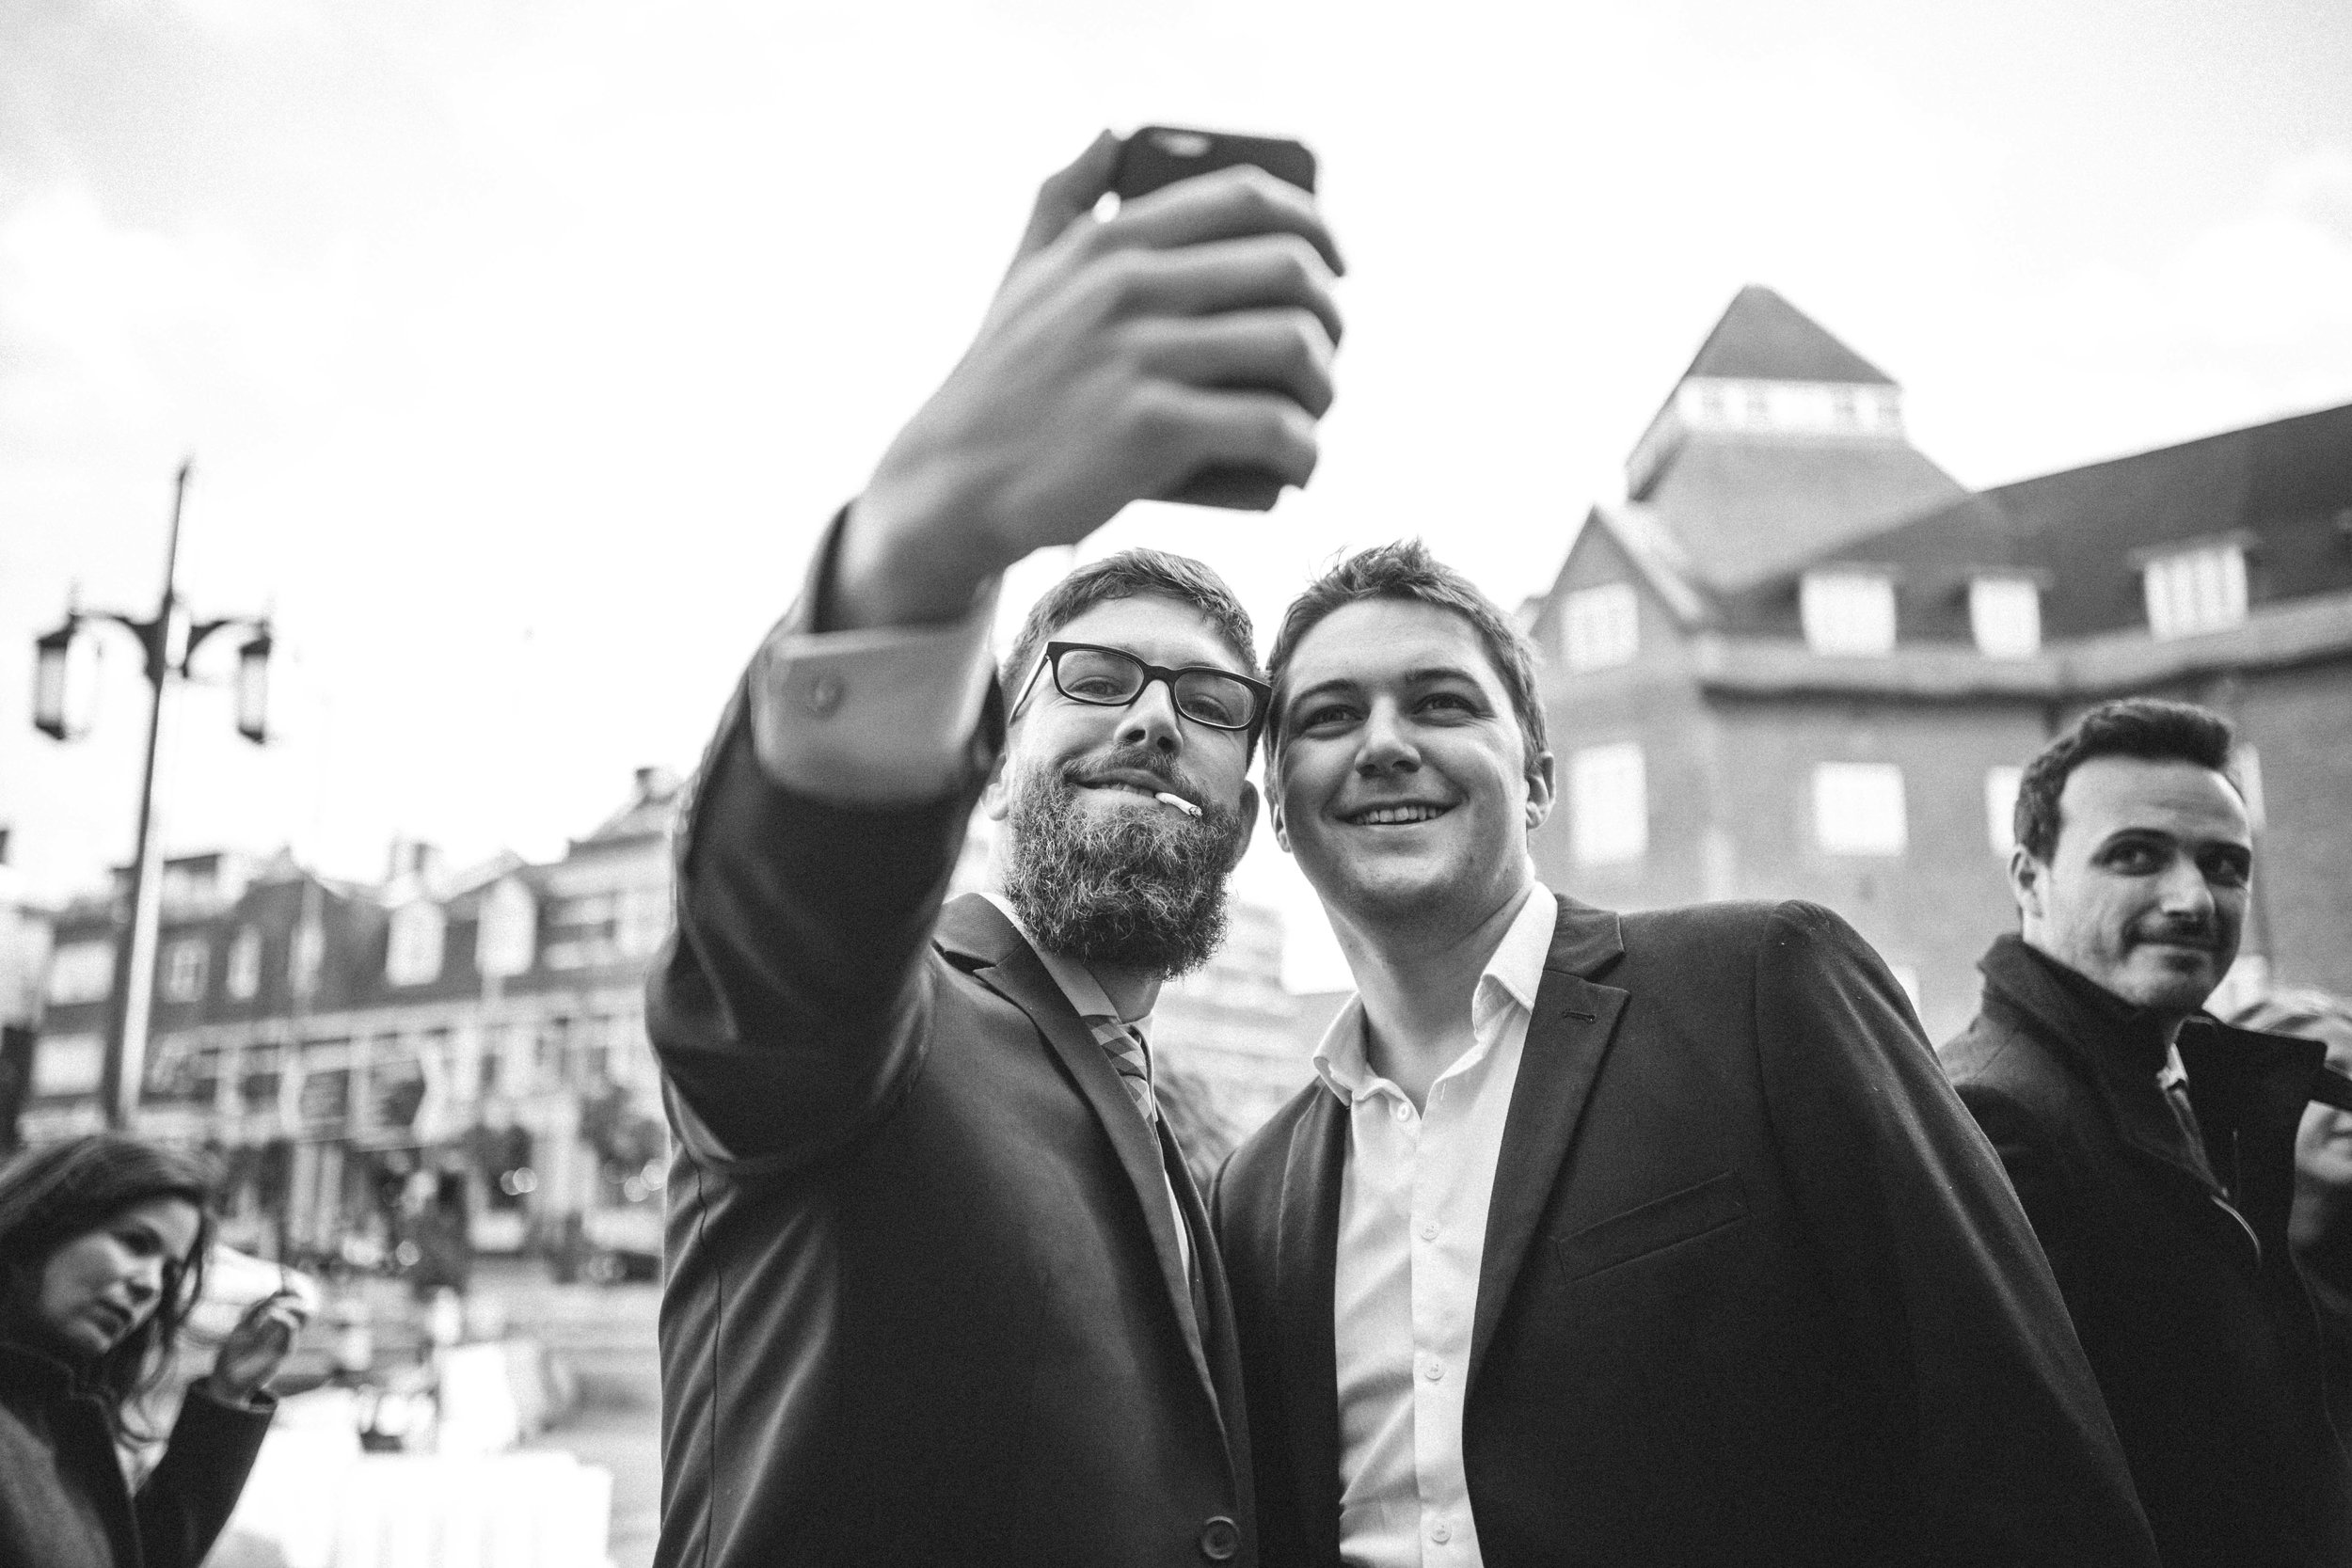 Wedding guests Selfie and a fag